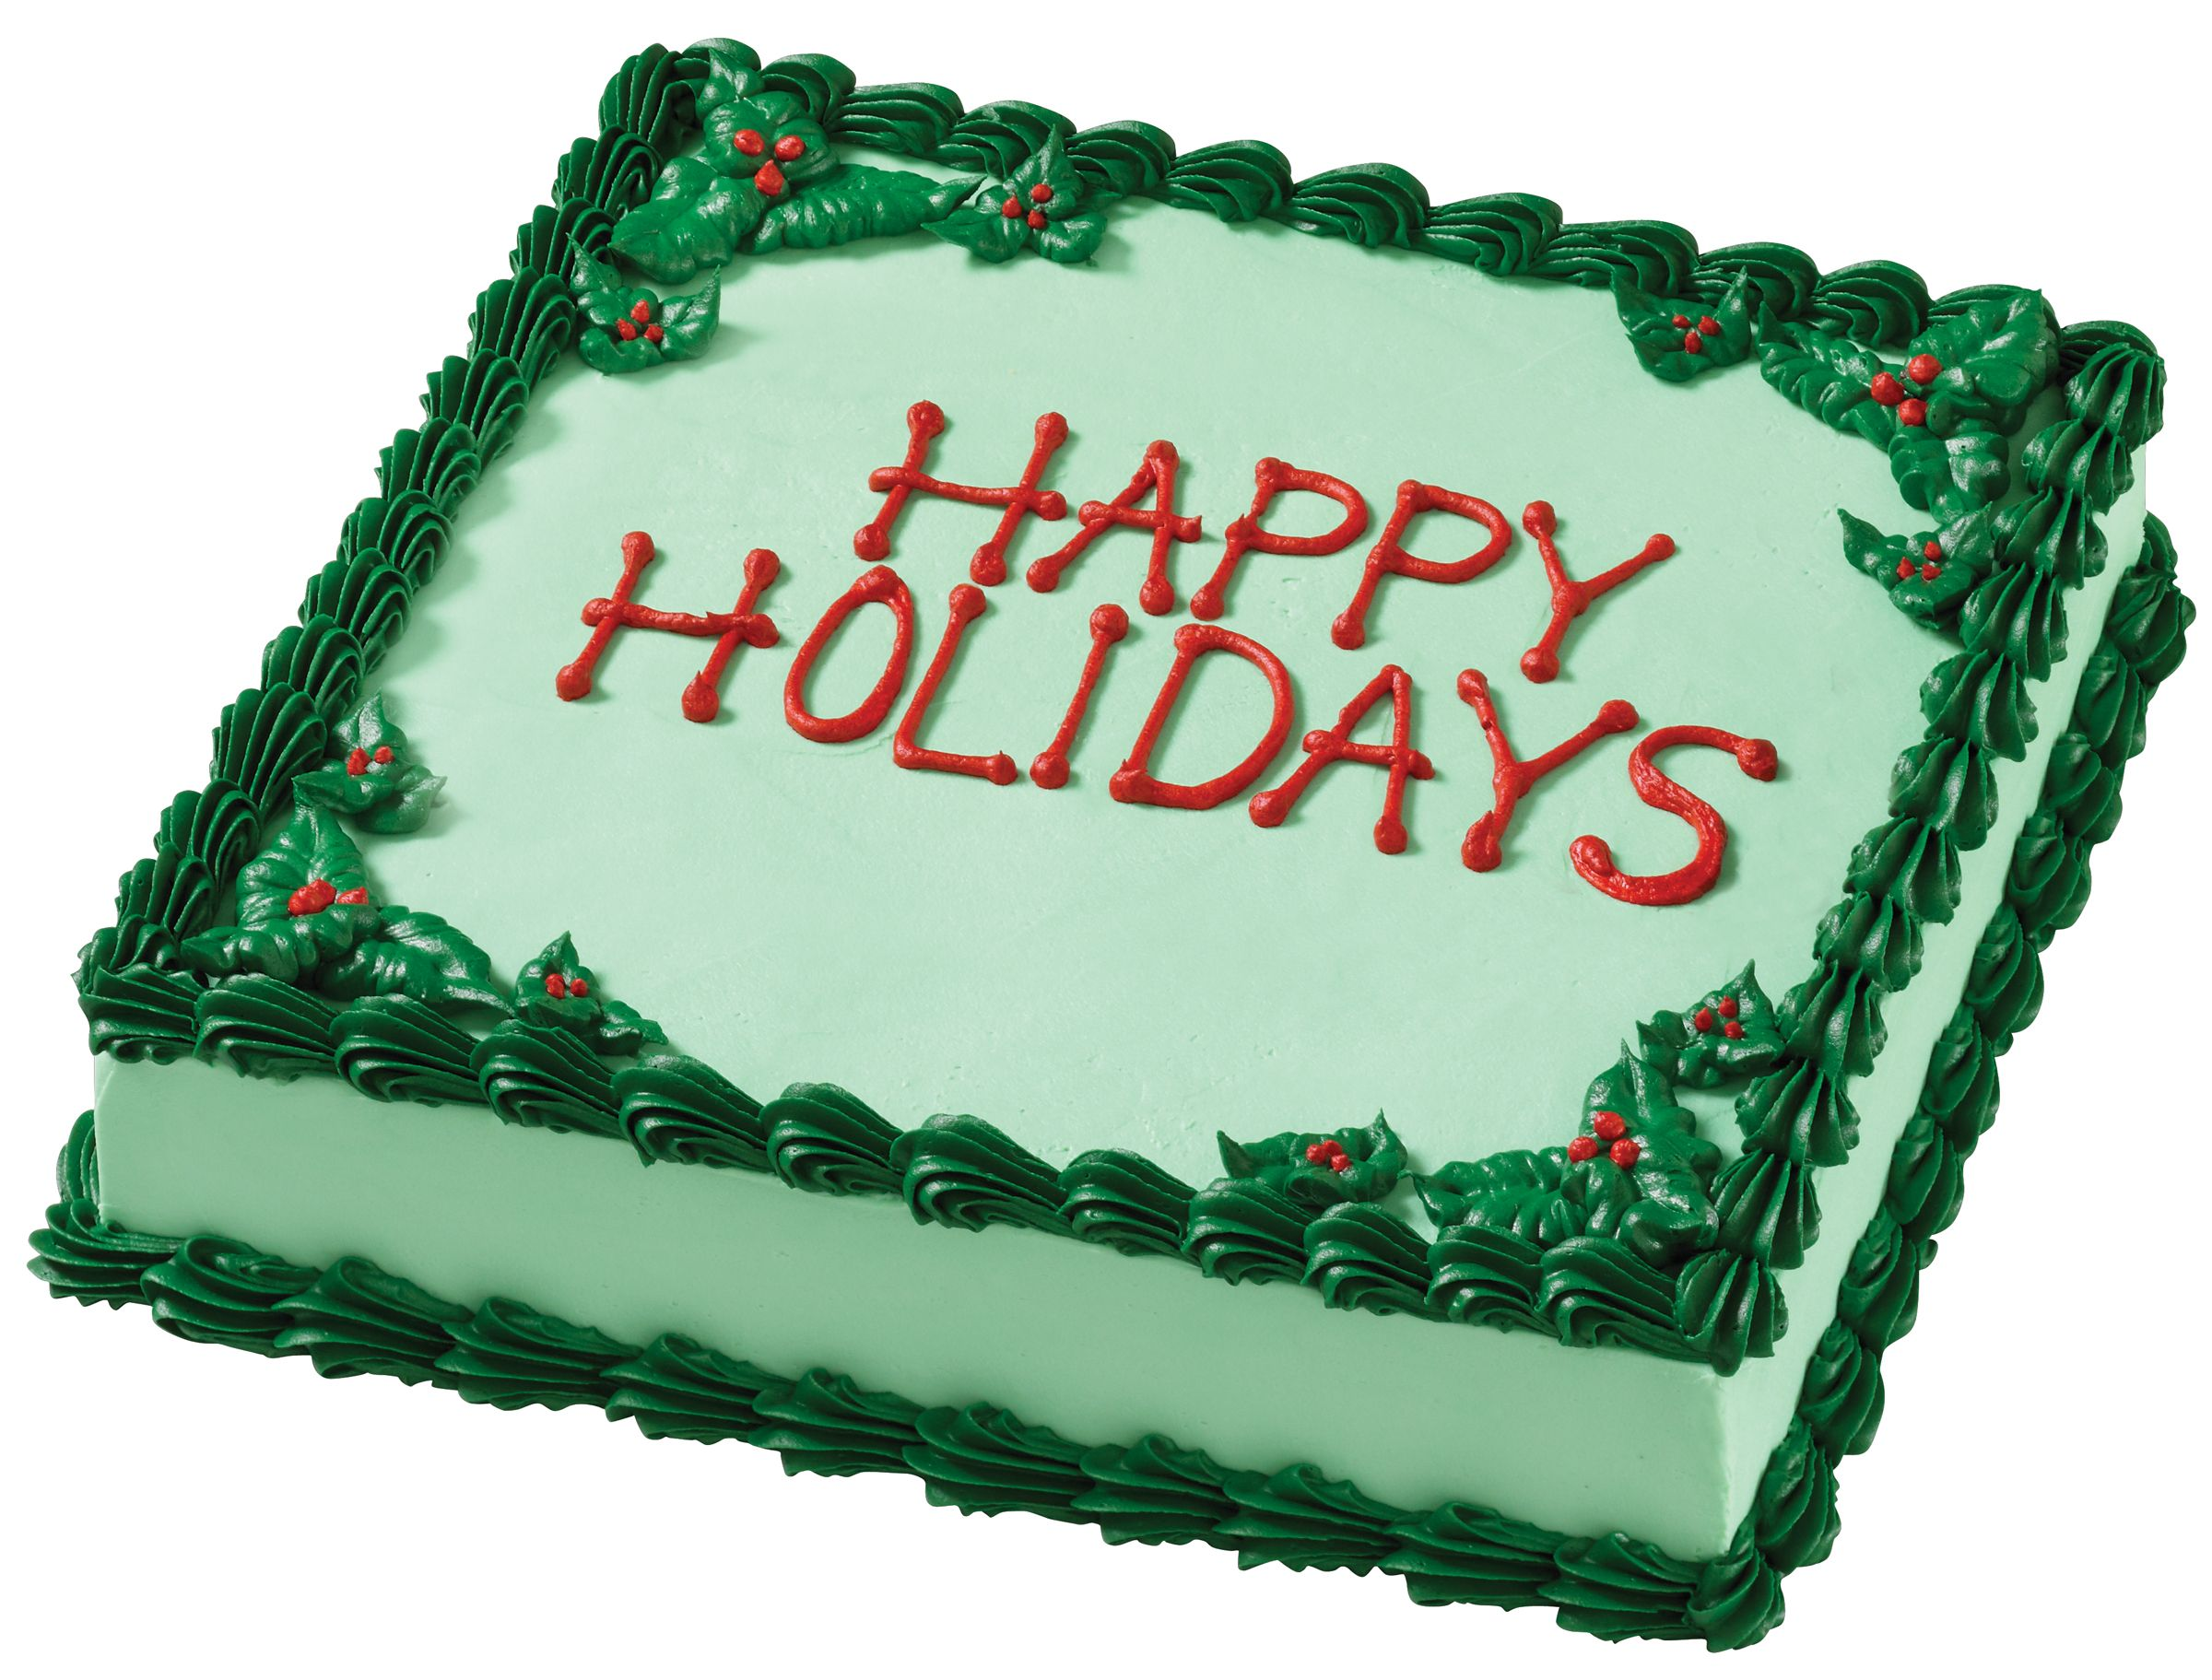 Square Xmas Cake Designs : Happy Holidays Square Cake Holiday Ice Cream Cakes ...